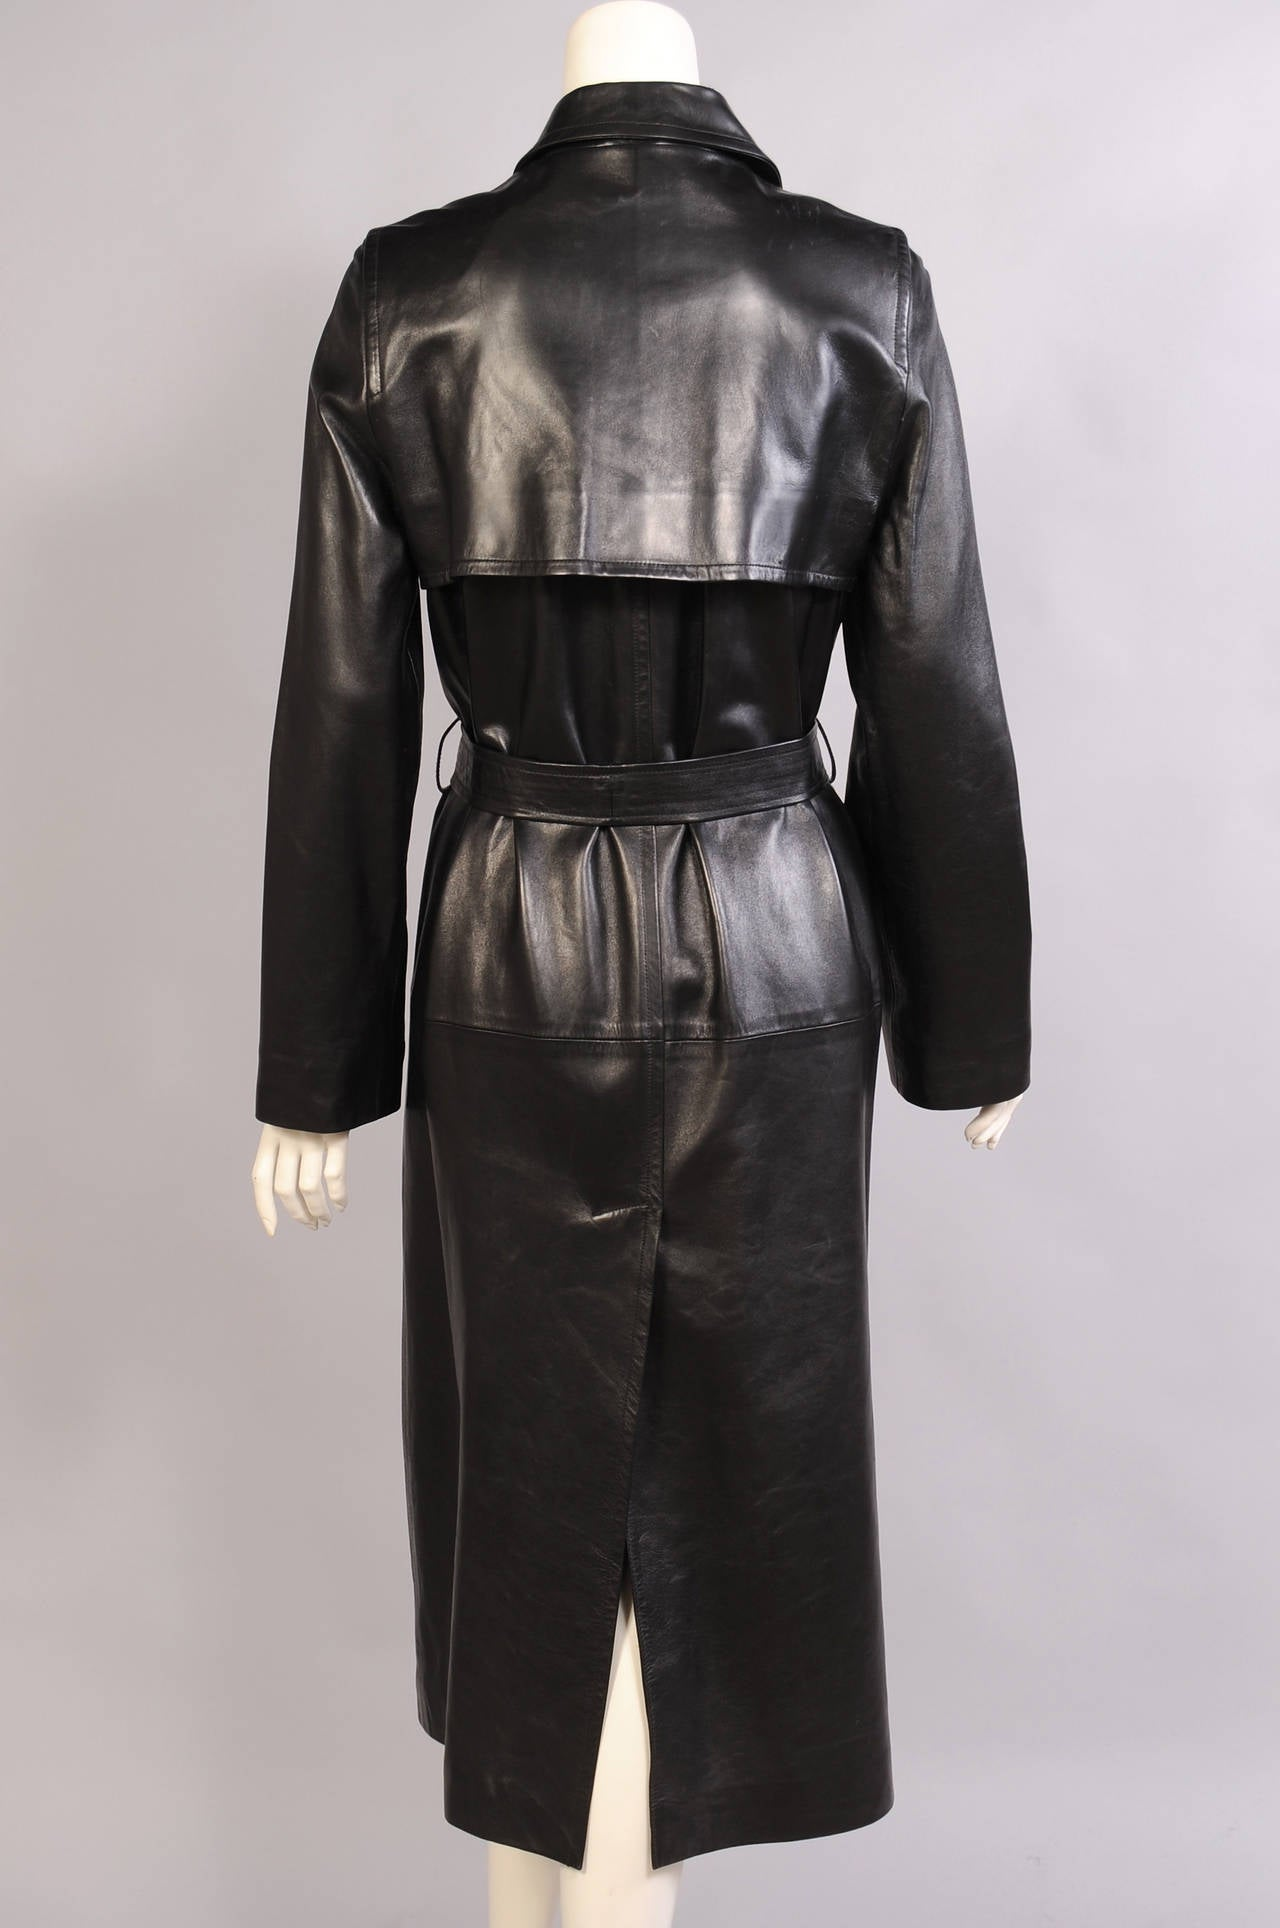 Celine Stunning Black Leather Trench Coat, Never Worn 4